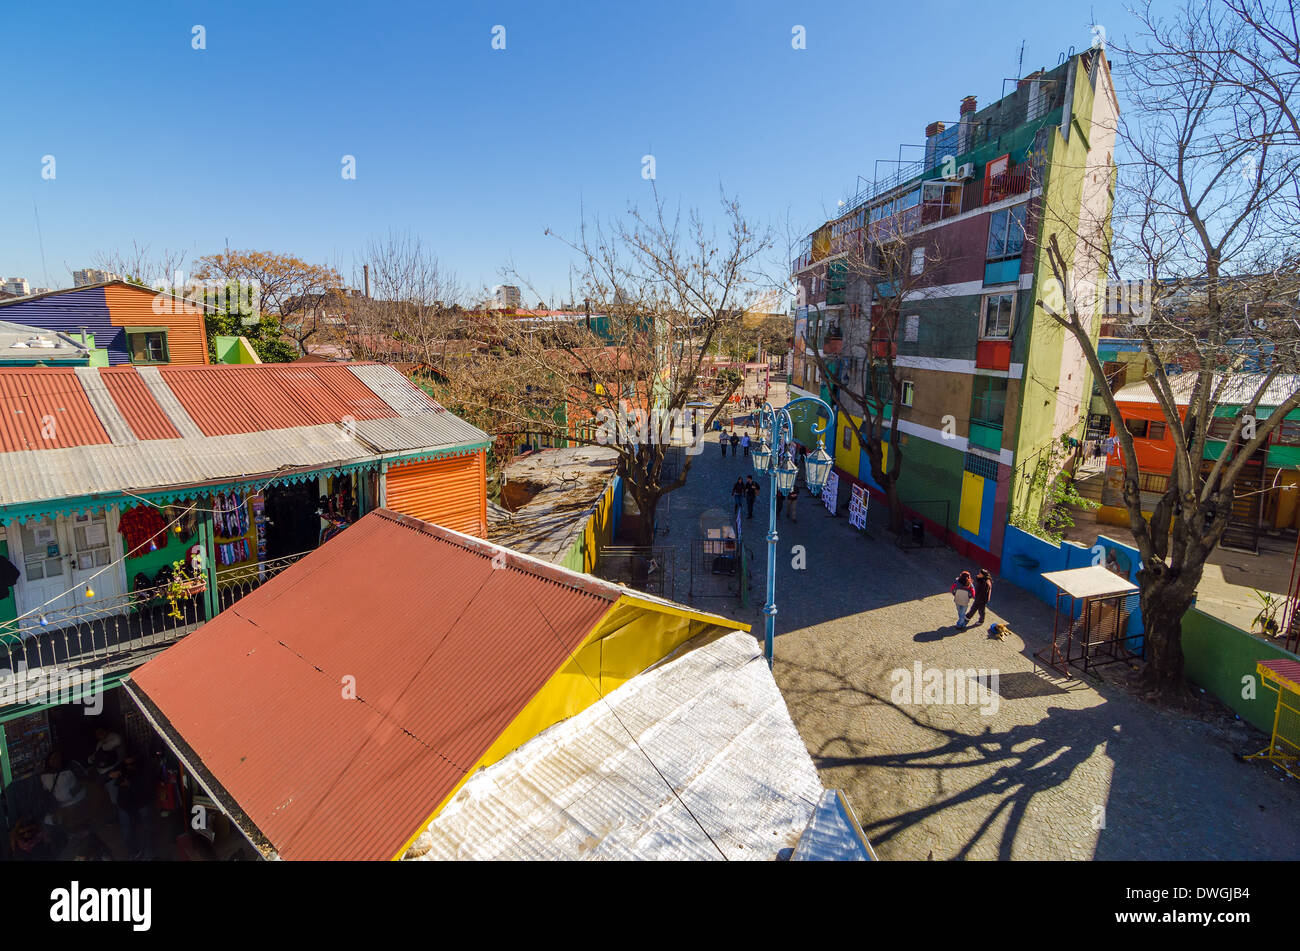 View of Caminito in La Boca neighborhood in Buenos Aires, Argentina - Stock Image